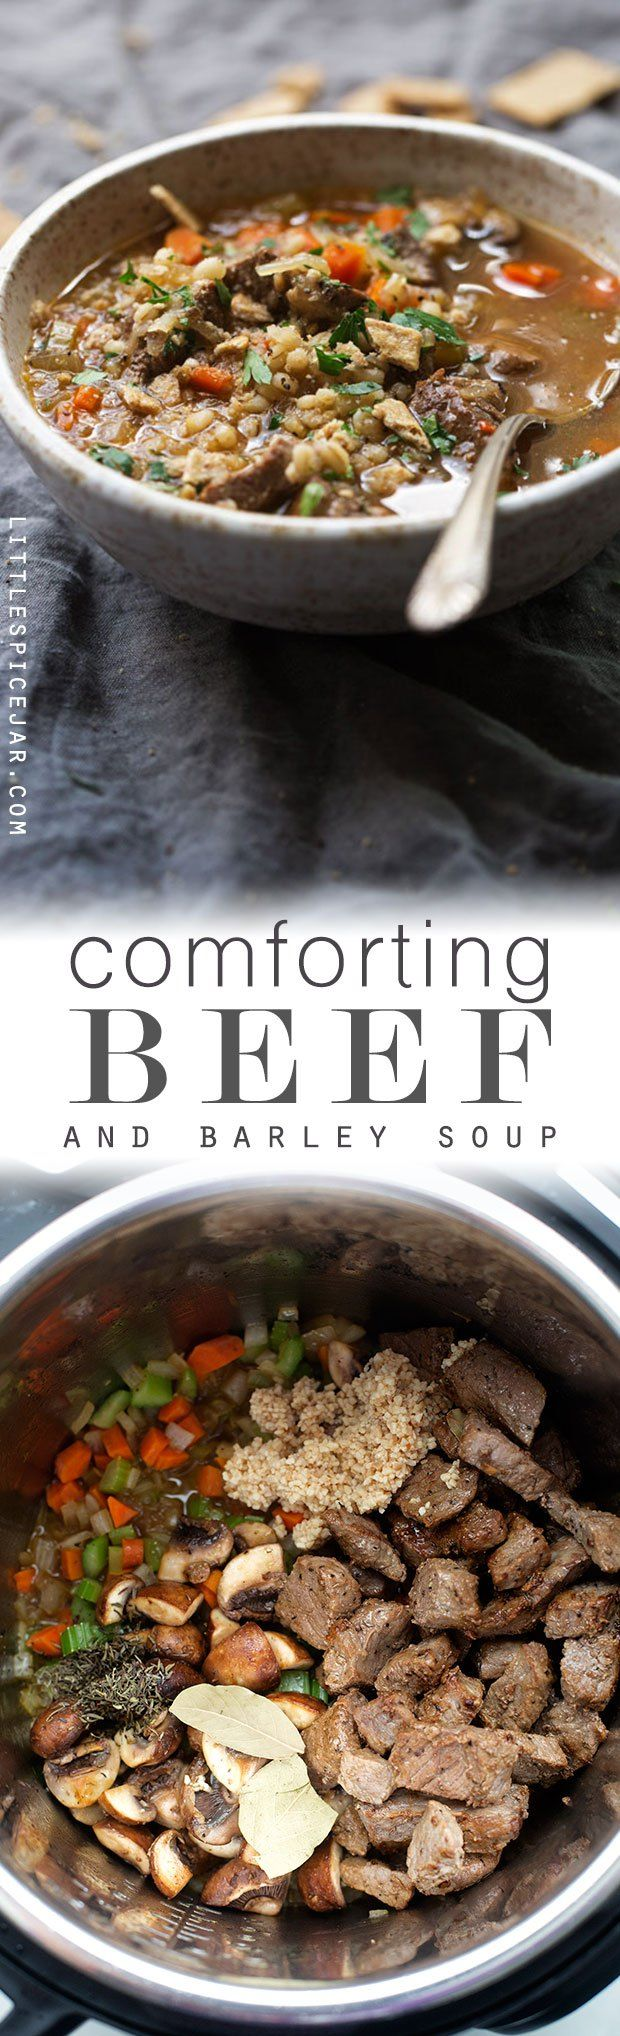 Instant Pot (Pressure Cooker) Beef Barley Soup - A simple, healthy, and…